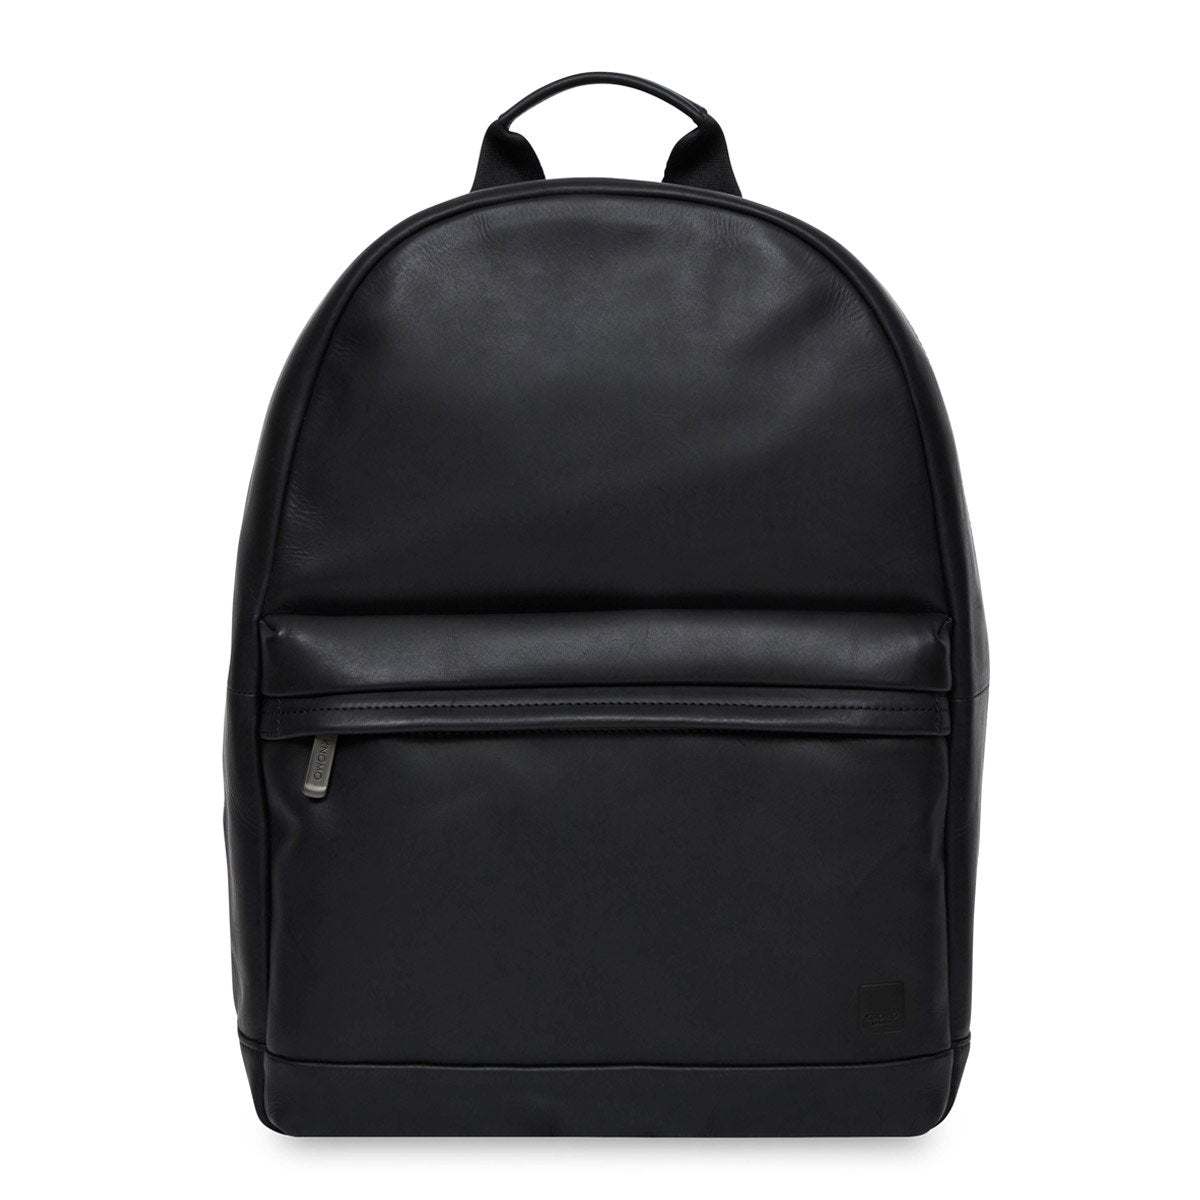 "Albion Leather Laptop Backpack - 15"" -  Black 